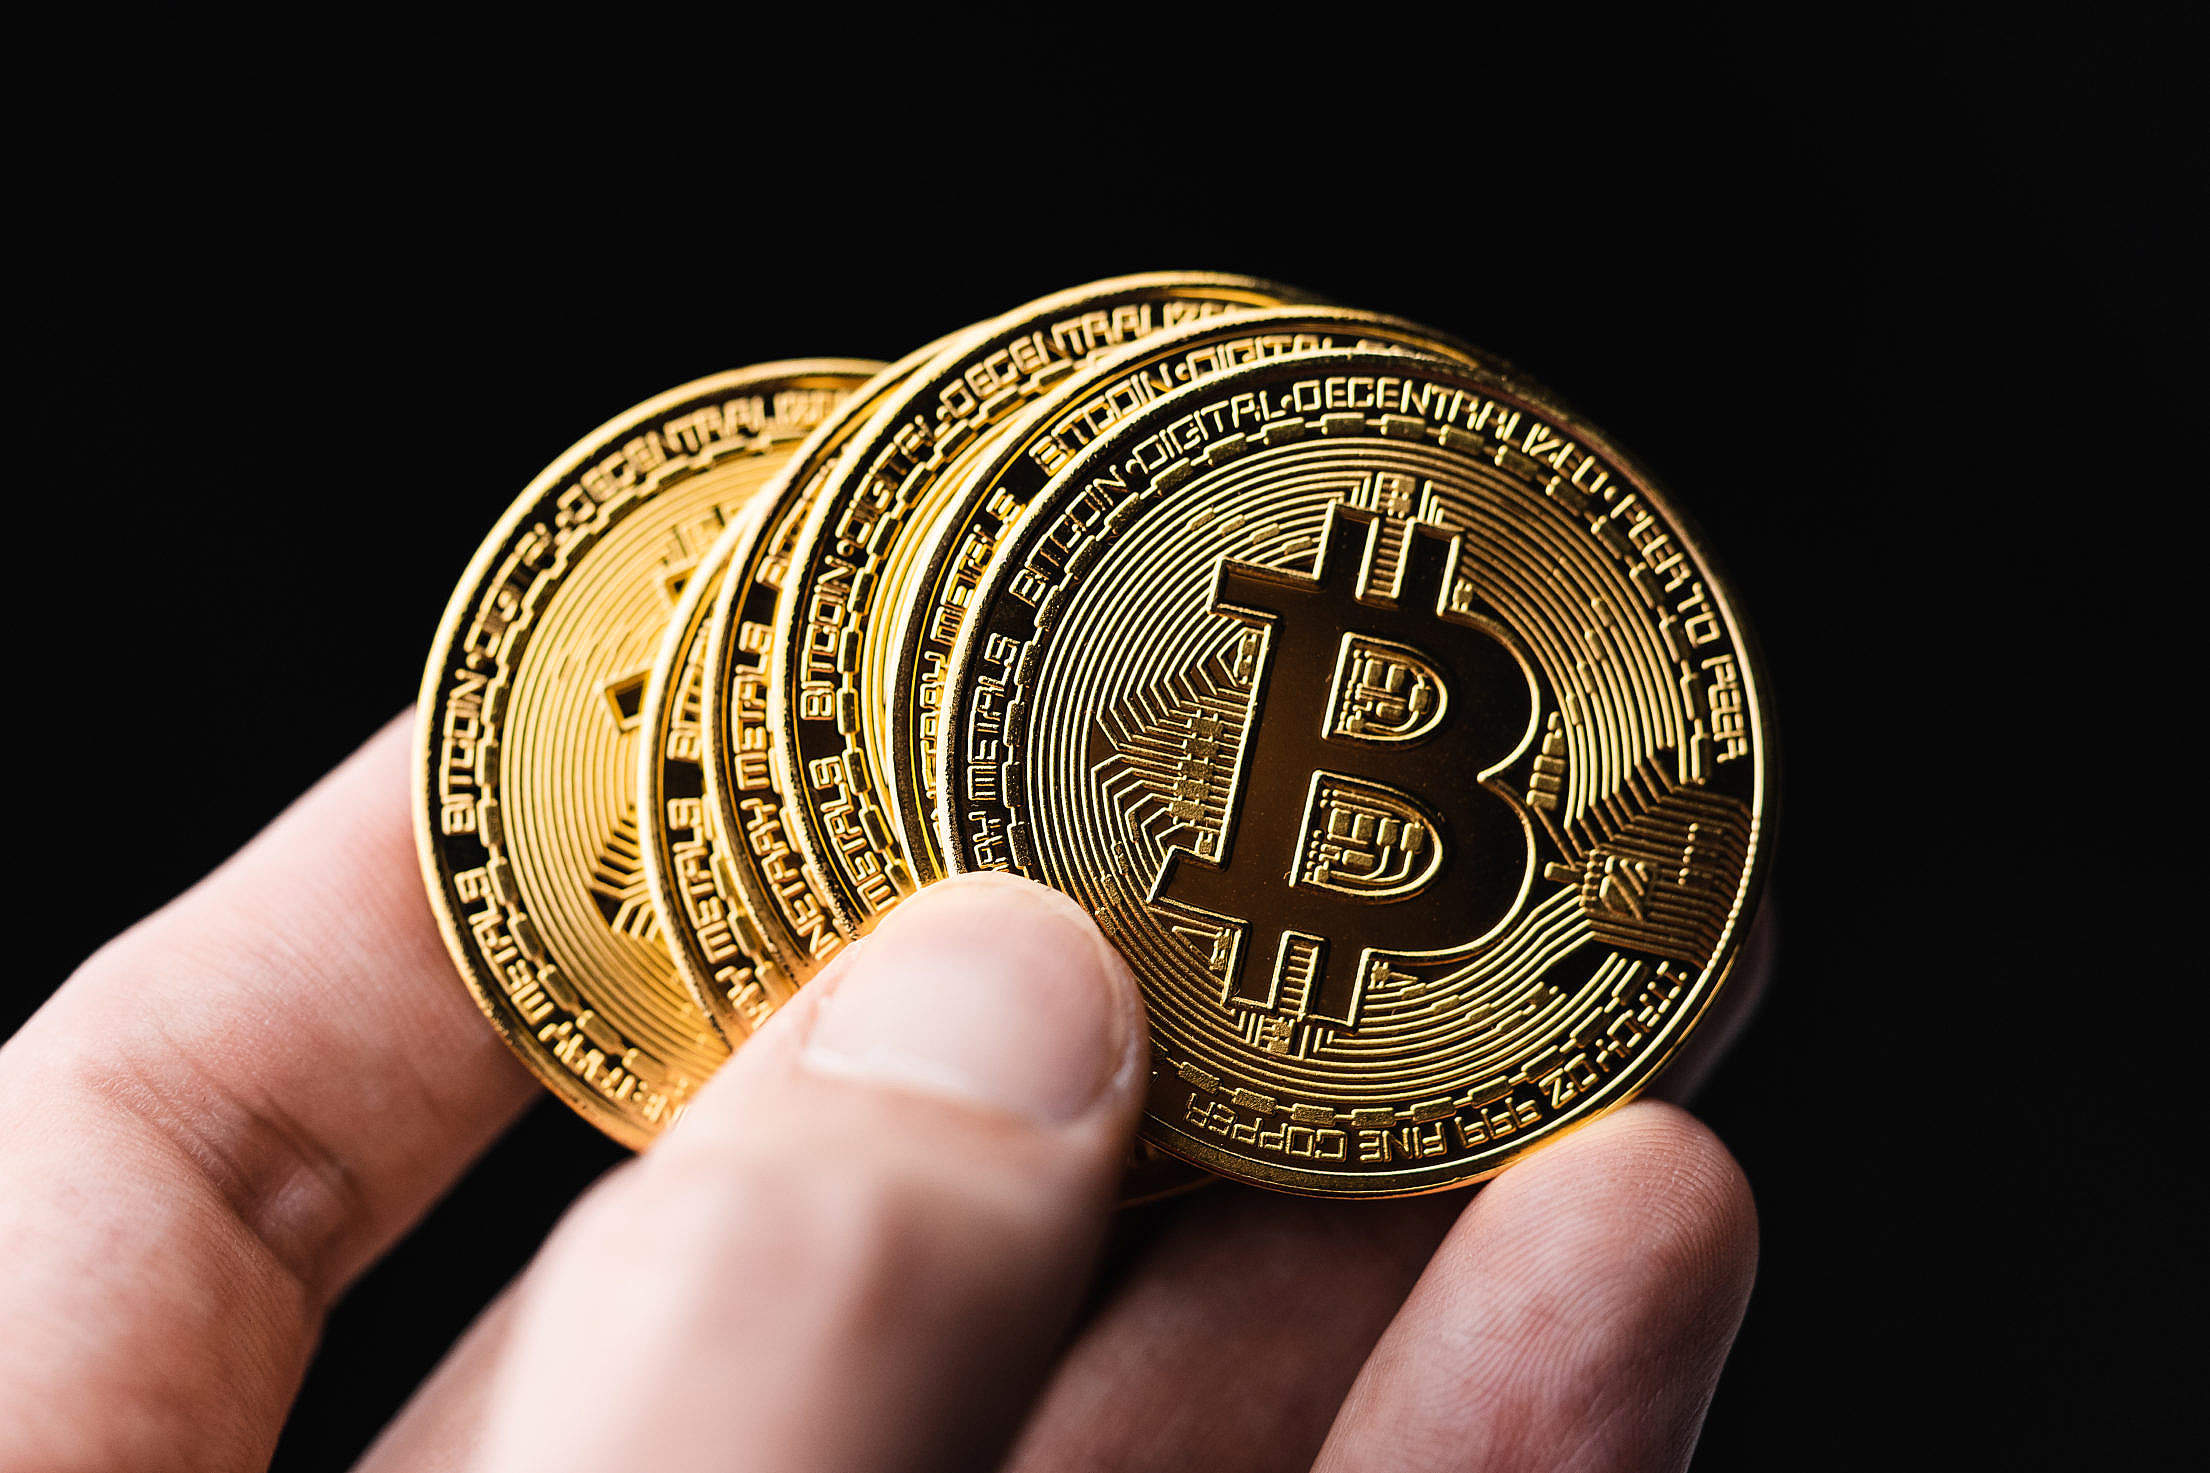 Holding Bitcoins in a Hand Free Stock Photo